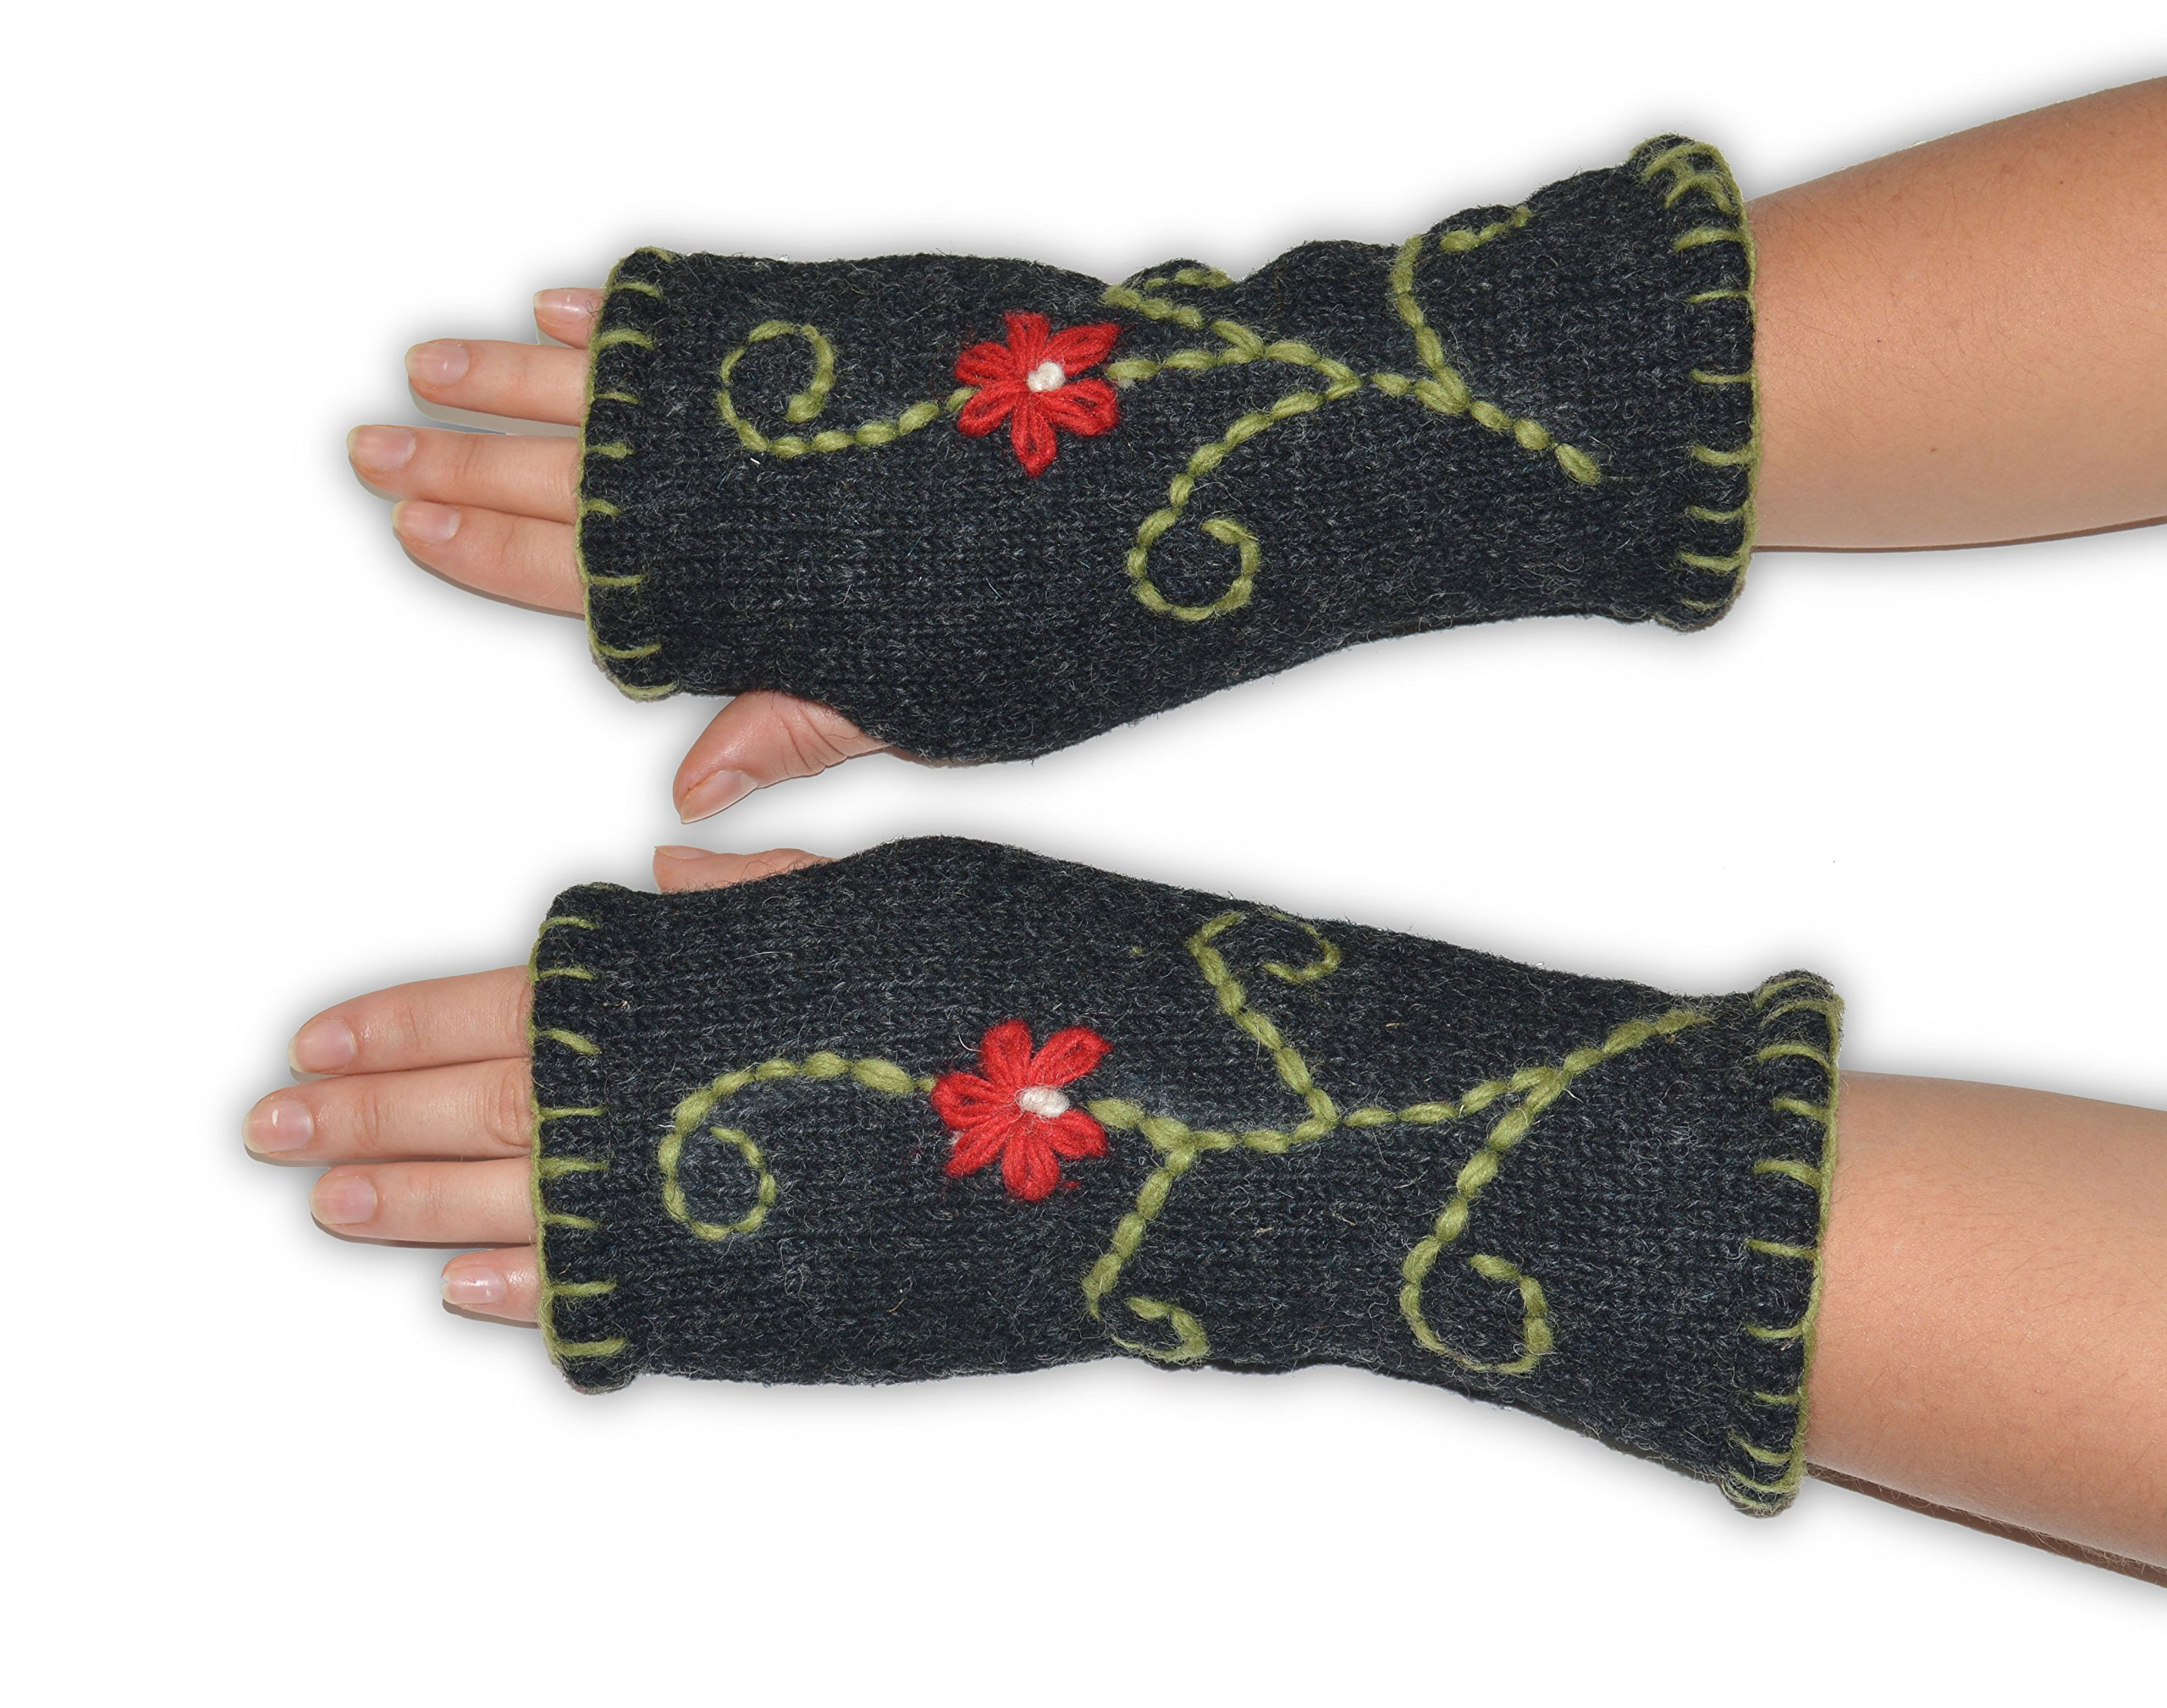 Invisible World Women's Knit Wool Fingerless Gloves Fleece-Lined Texting Flower